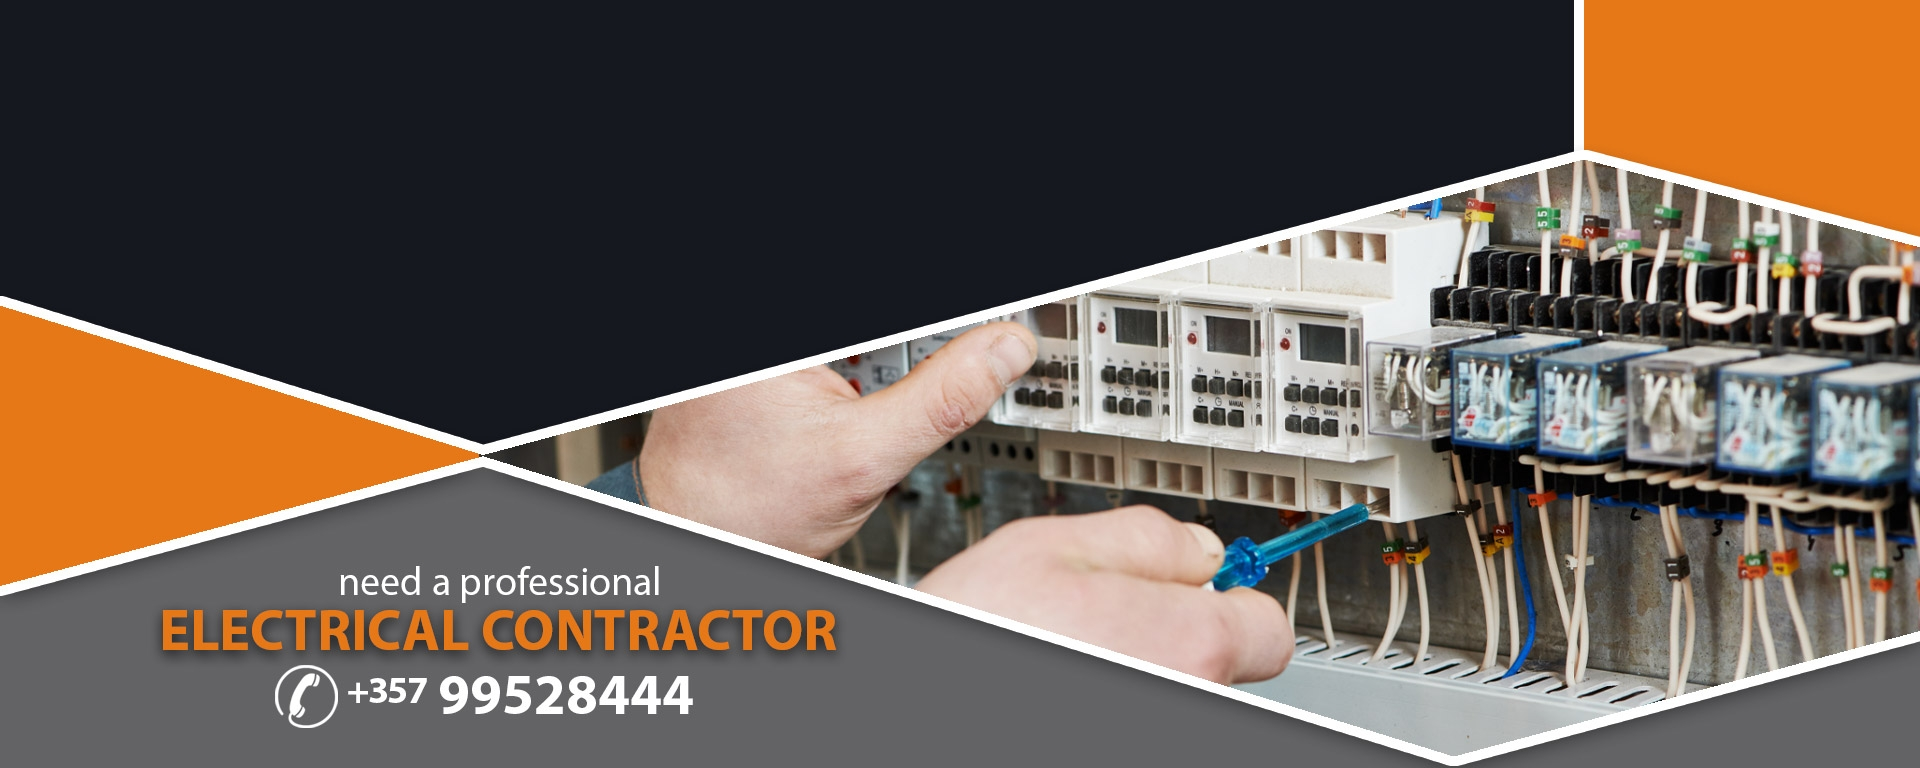 RESIDENTIAL, INDUSTRIAL, COMMERCIAL ELECTRICIANS